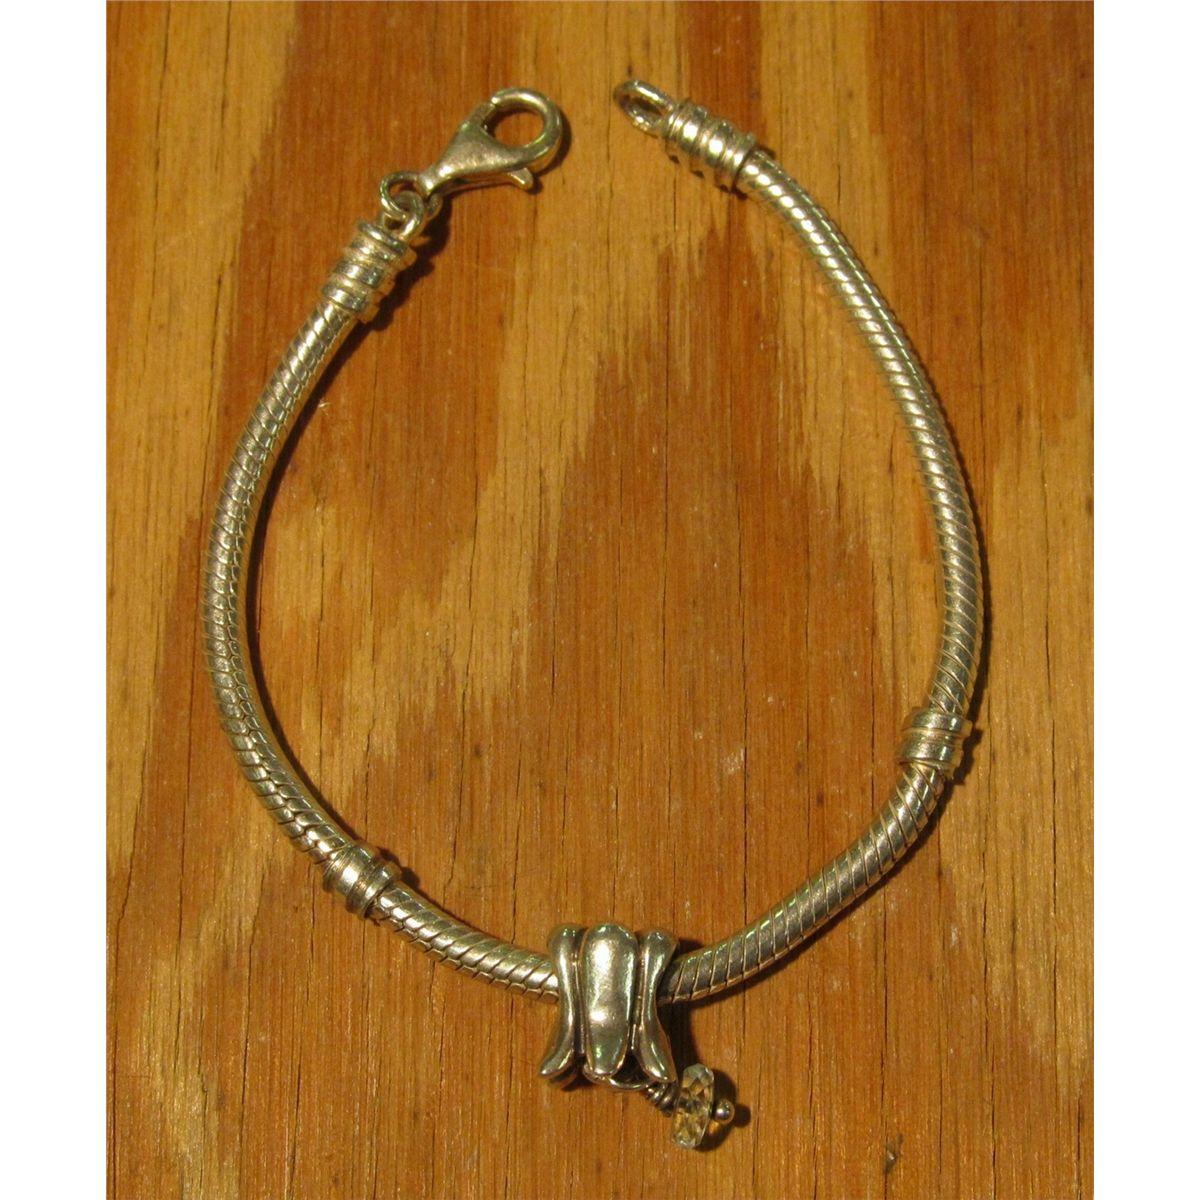 6 Pandora Bracelet Modified With A Lobster Clasp Comes One 790248aq Aquamarine T